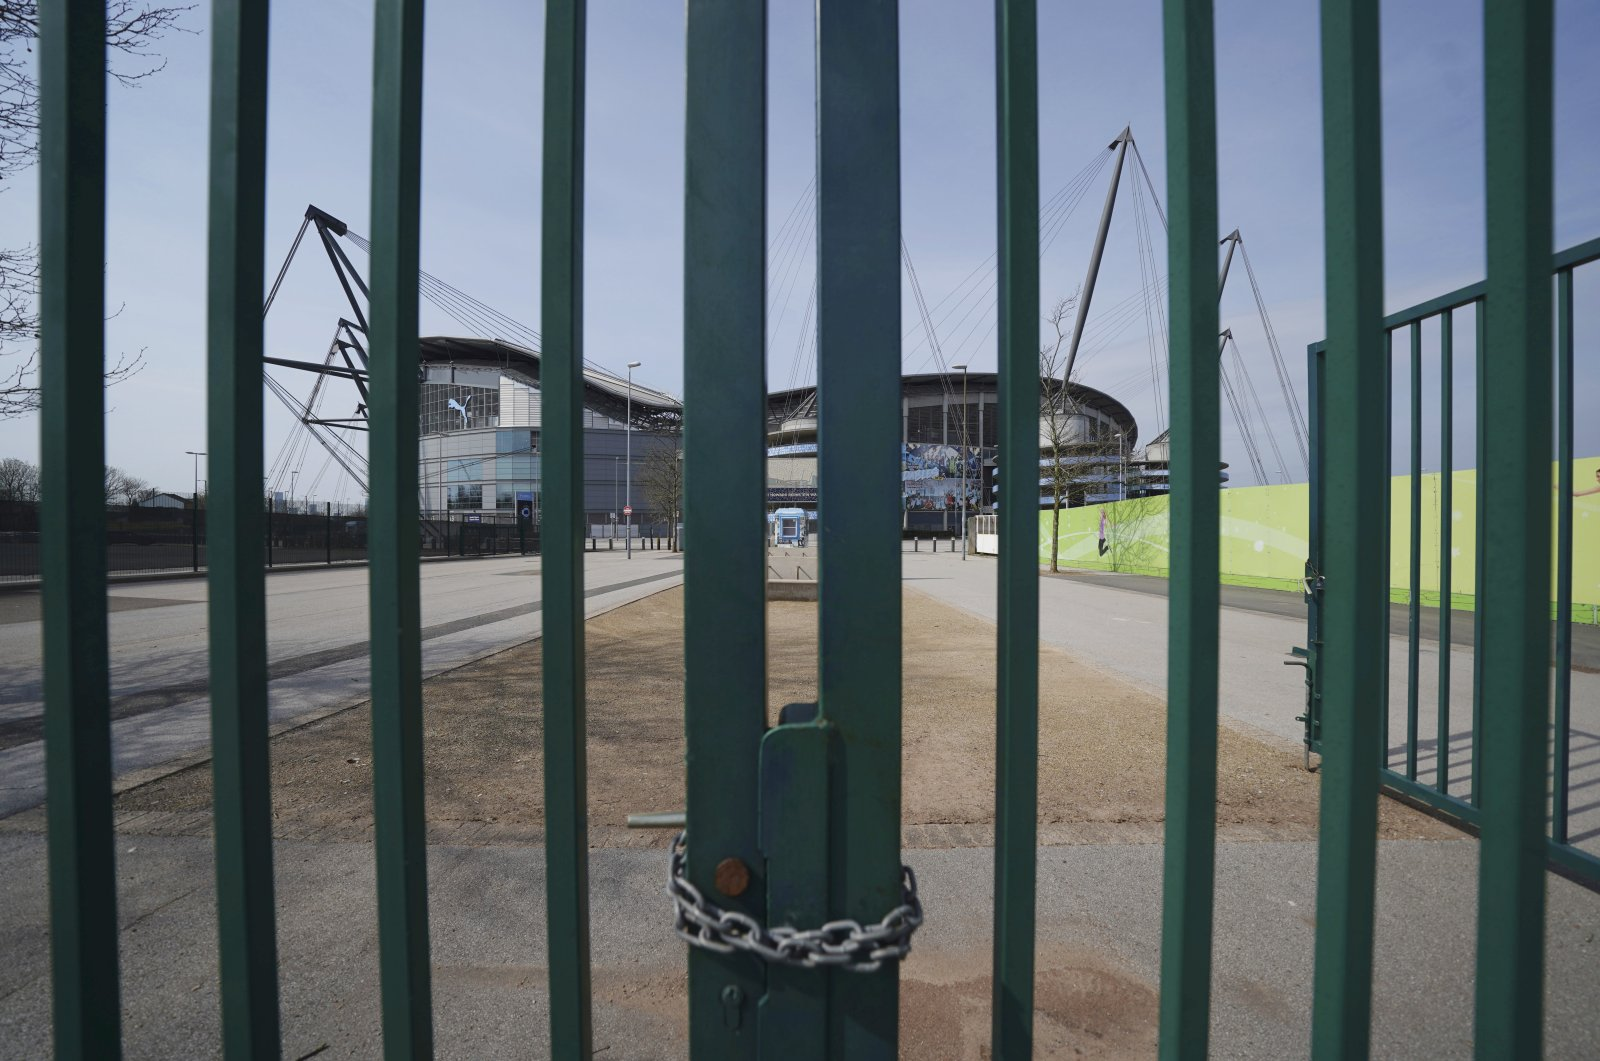 Gates stand locked outside the closed Manchester City Etihad Stadium, Manchester, England, April 9, 2020. (AP Photo)